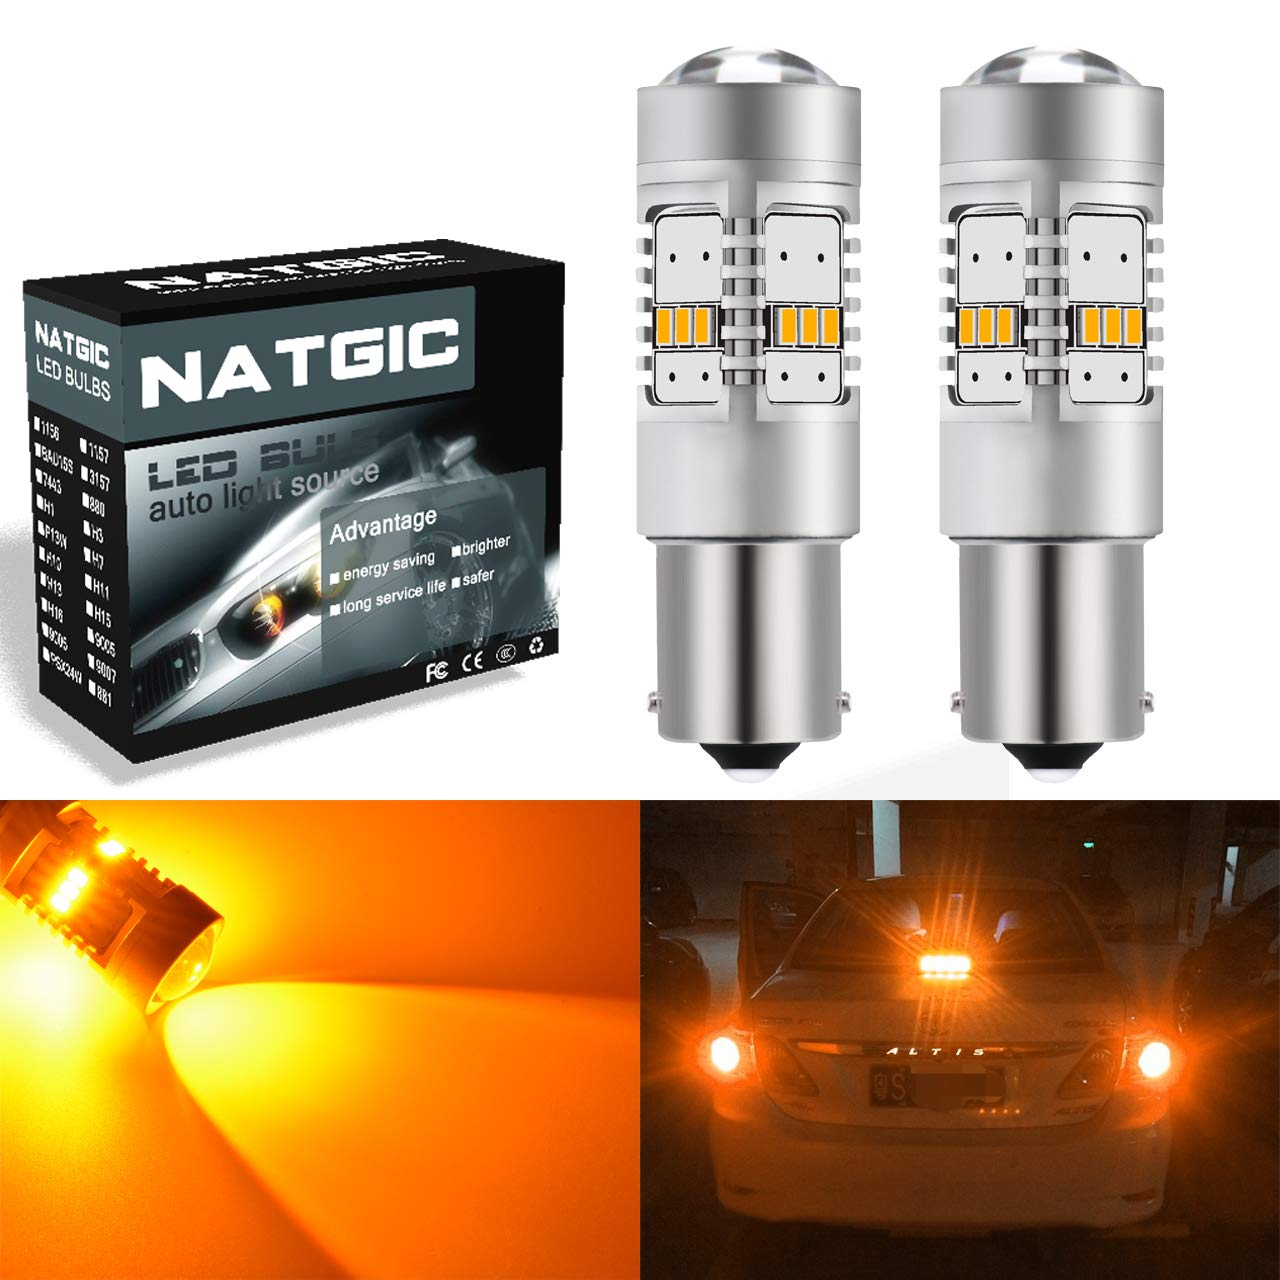 NGCAT 1156 BA15S Led Bulb 1800 Lumens 14 SMD 3020 CREE 1141 7506 LED Bulbs for Cars Turn Signal Bulbs Tail Brake Stop Lights, DC 10-16V Amber(2-Pack)